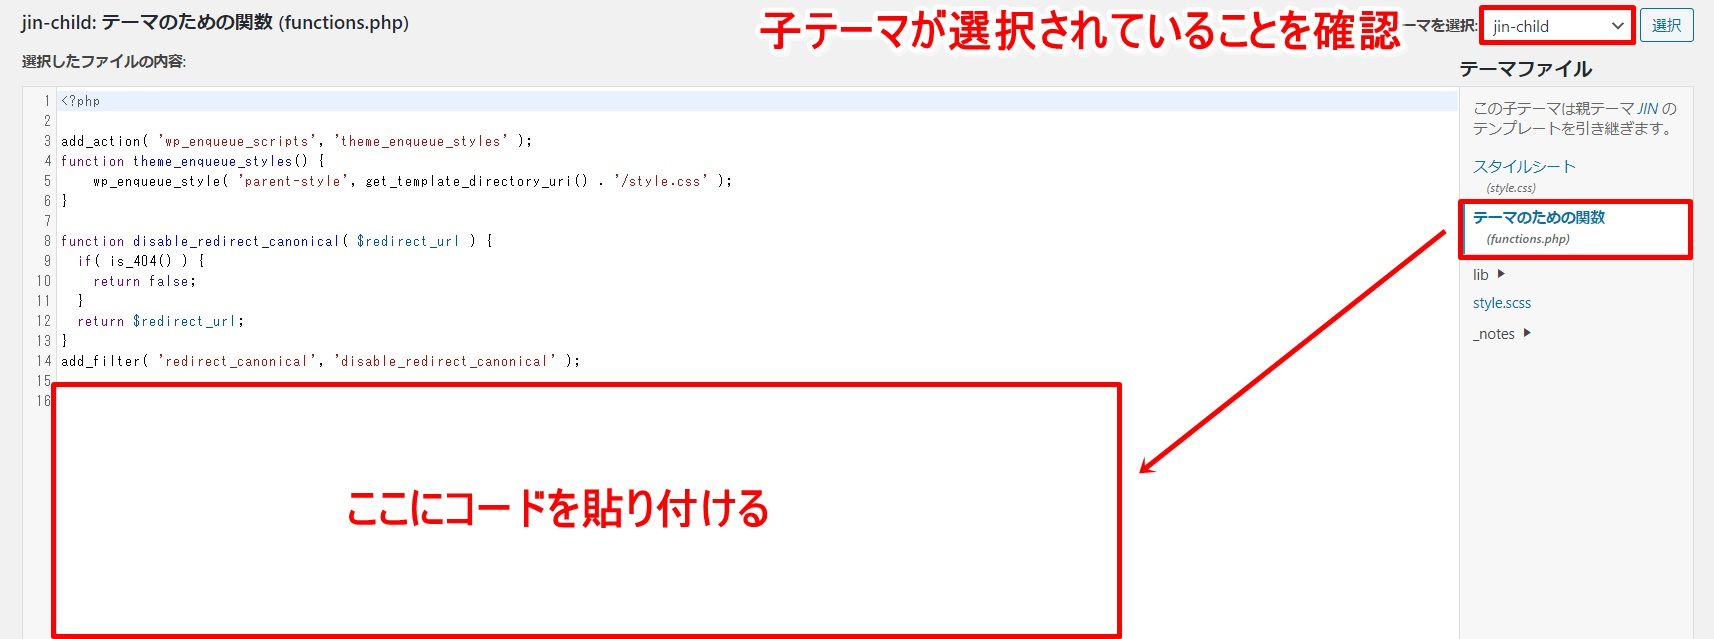 JINからAll in one seo packを削除9